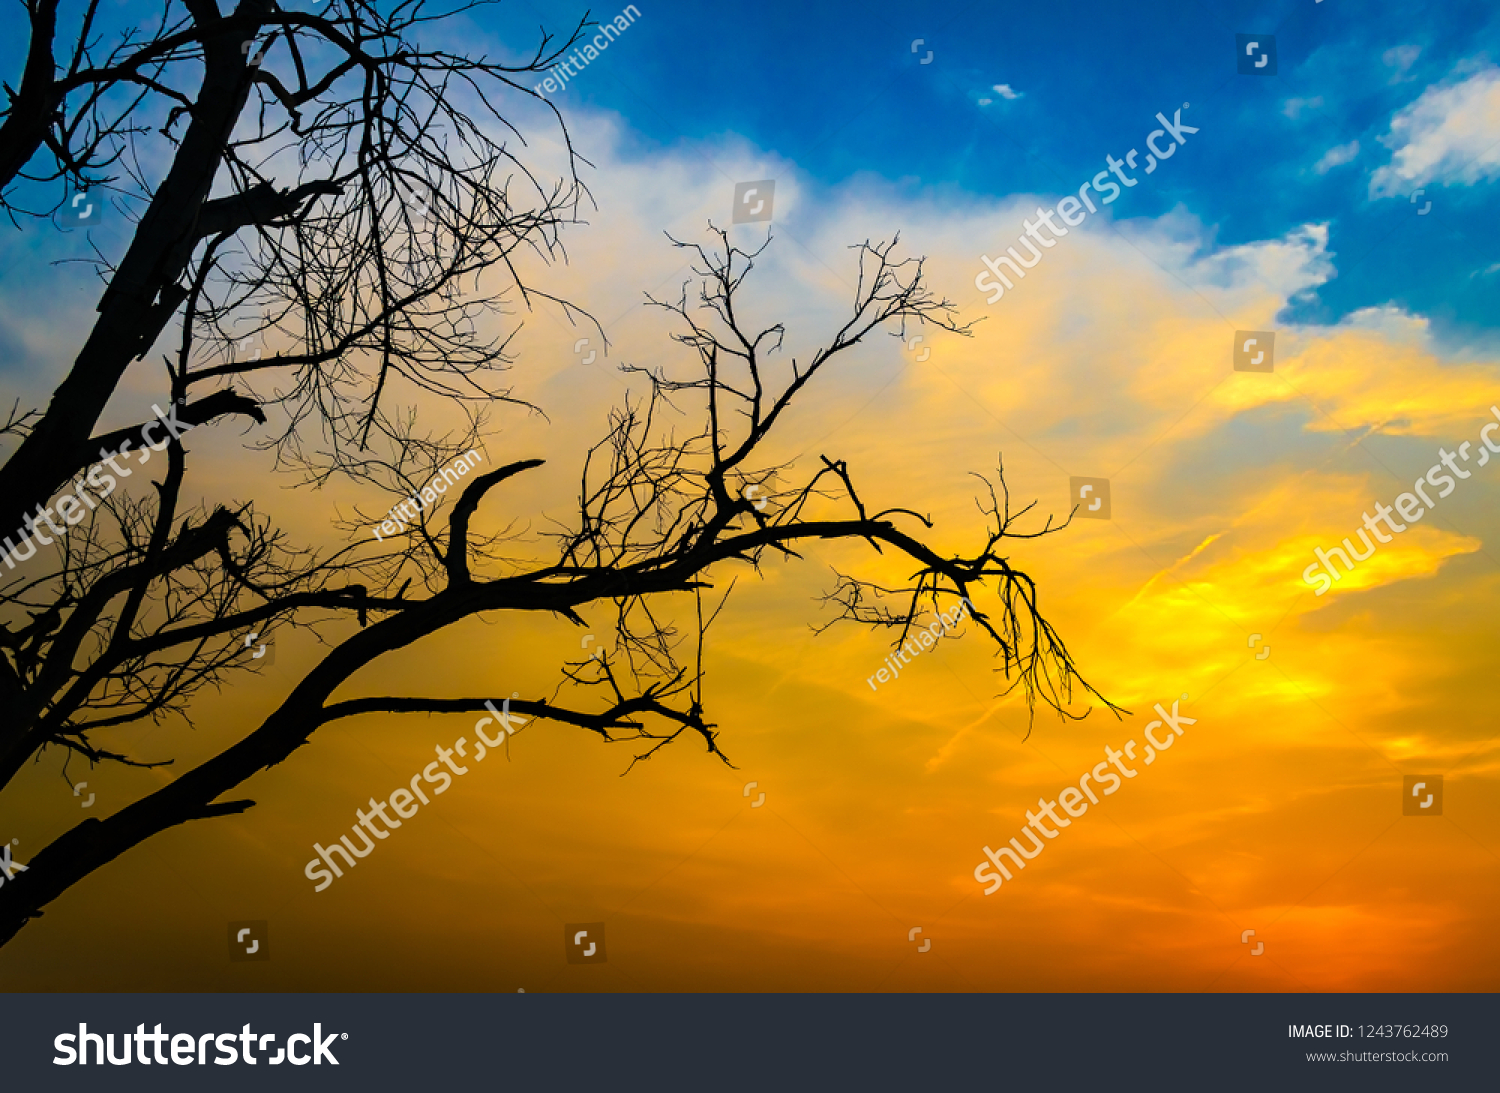 Dry, leafless tree silhouetted against a multicolored sky background.